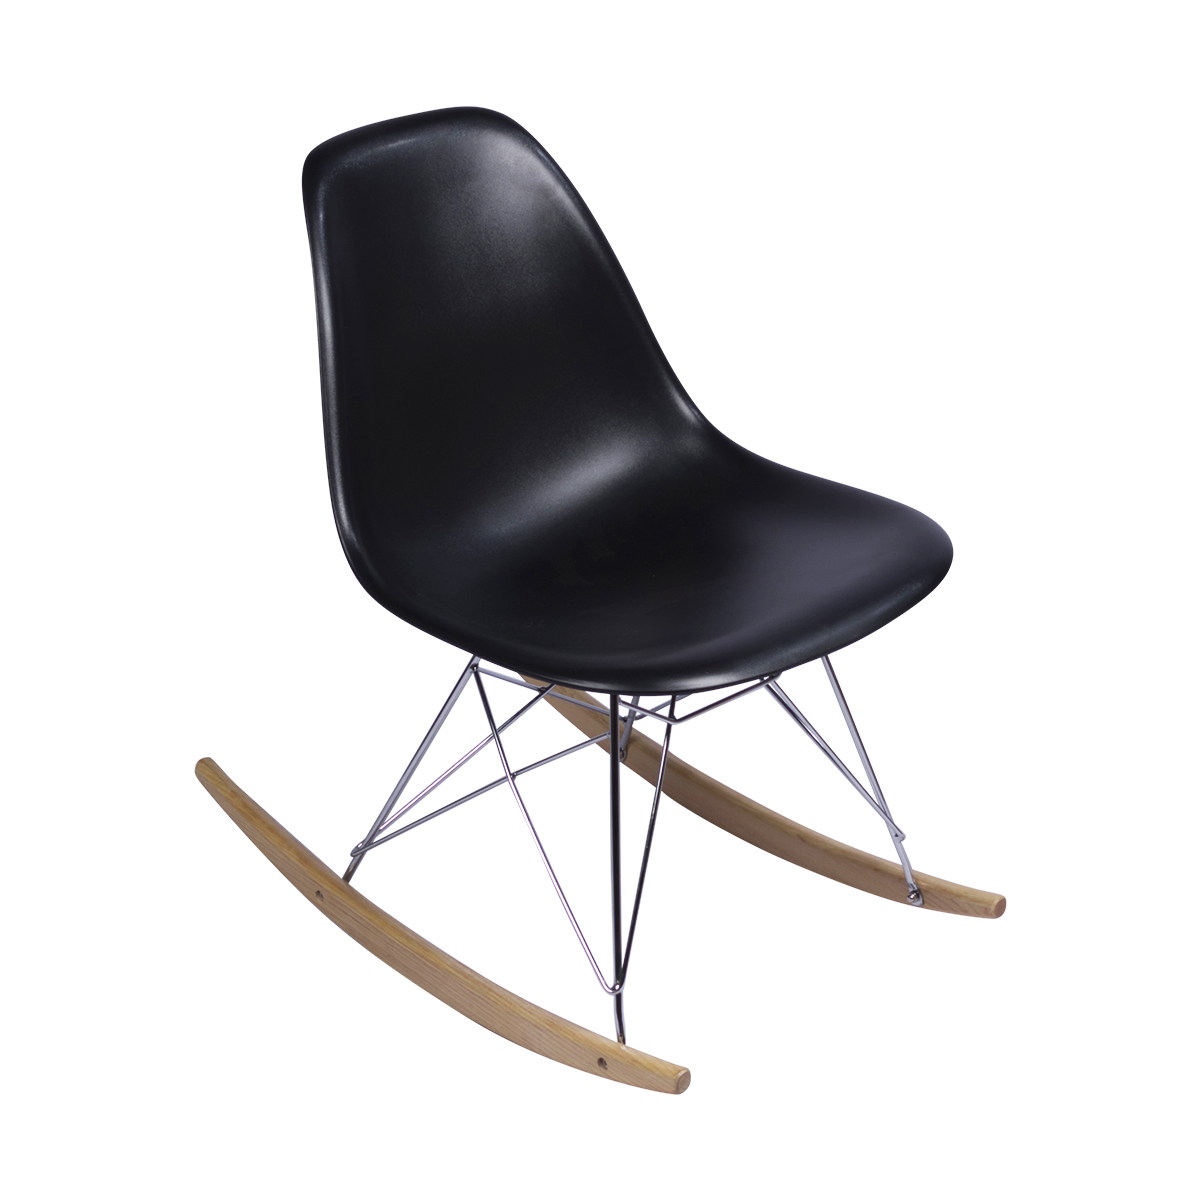 Eames rocking chair black replica martlocal for Eames chair replica deutschland